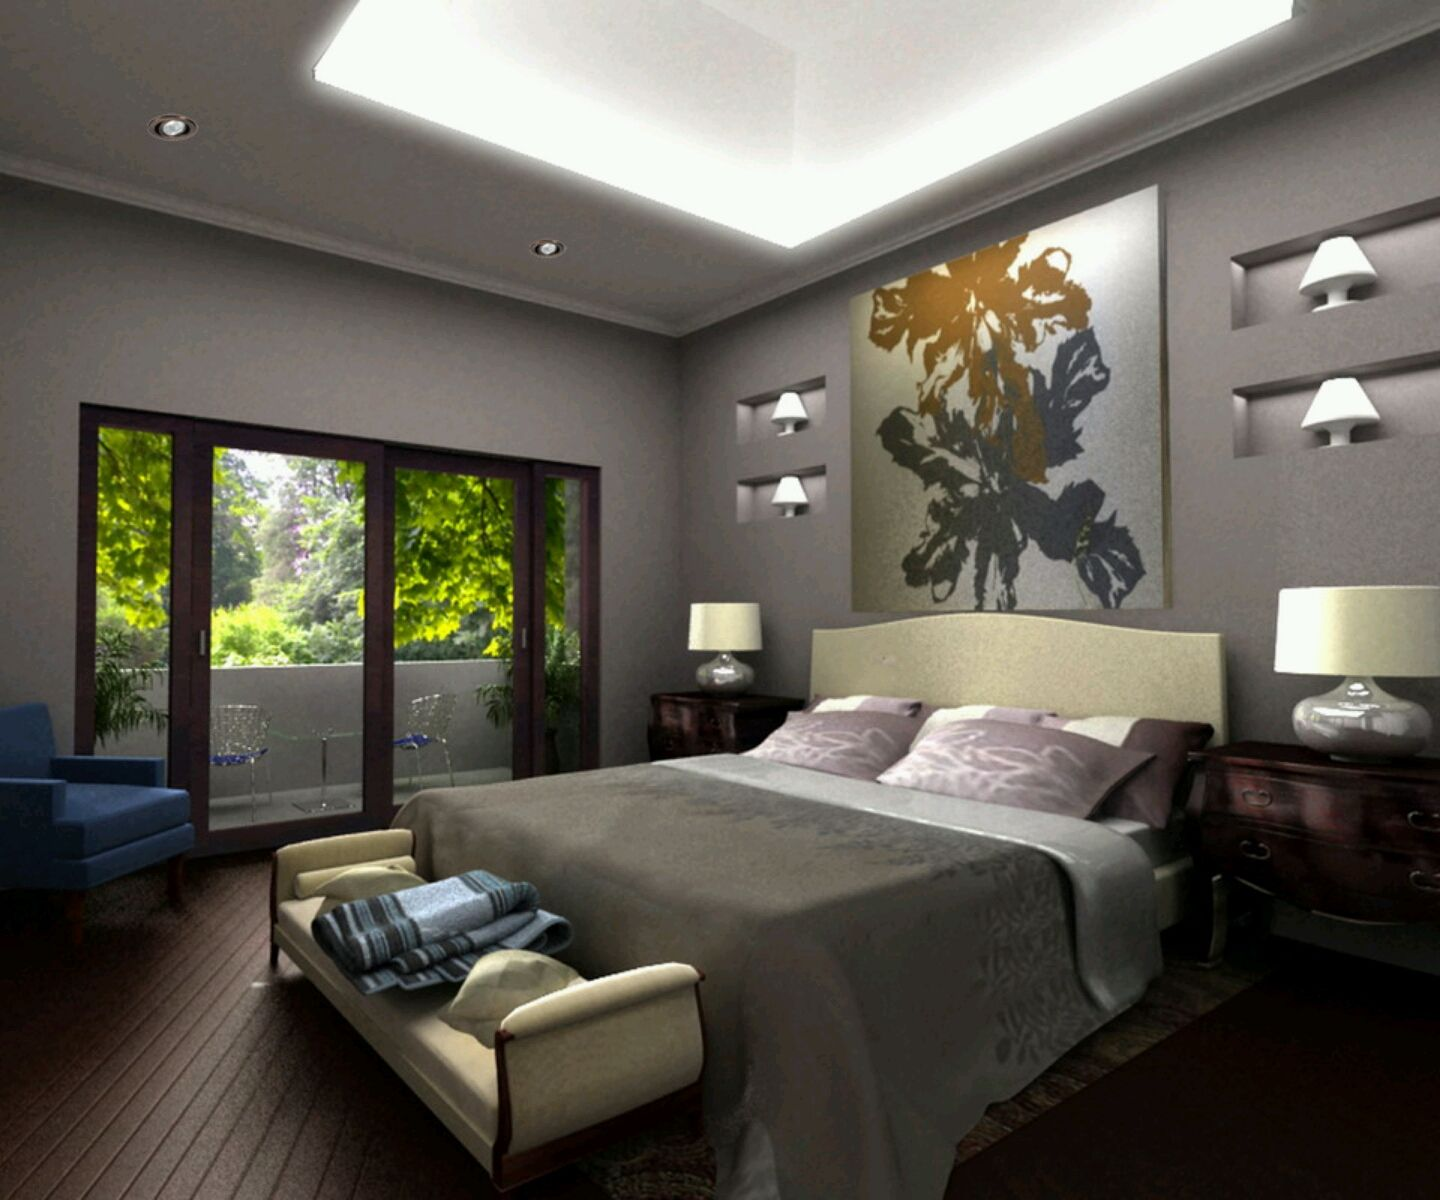 Modern bed designs beautiful bedrooms ideas also home design rh in pinterest